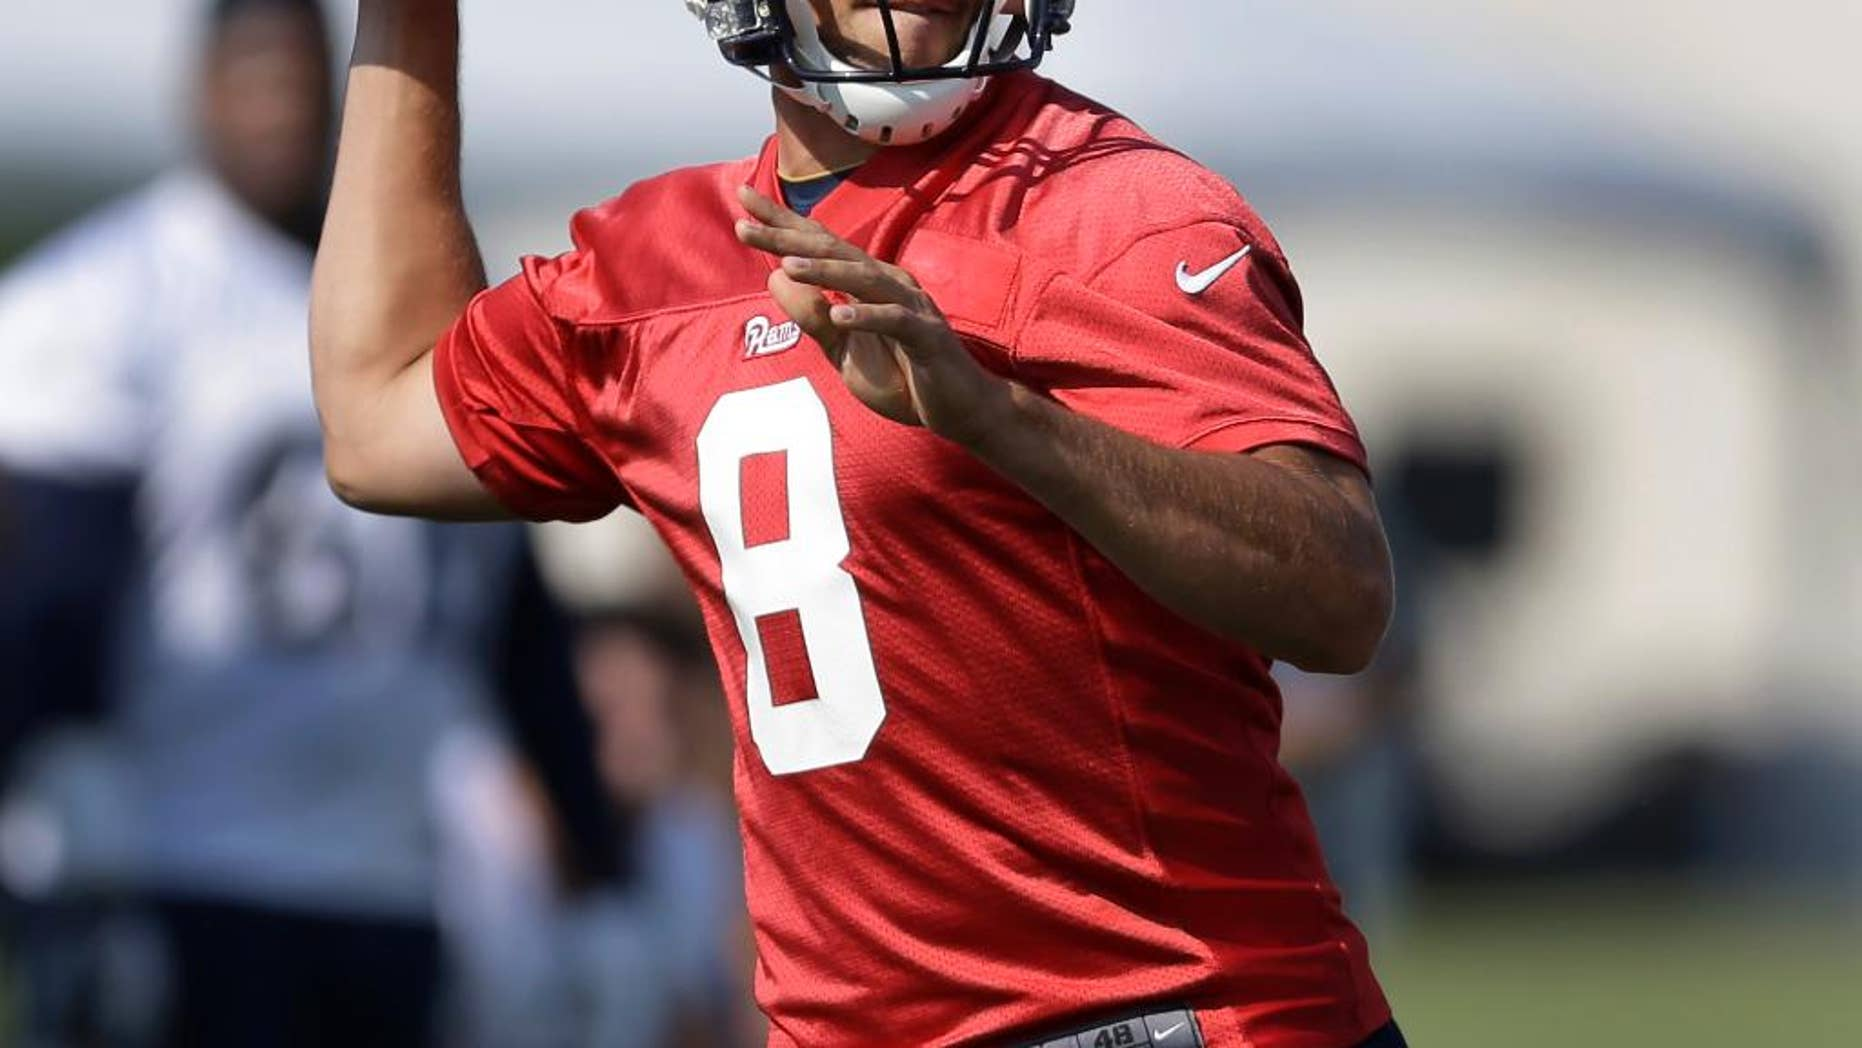 St. Louis Rams quarterback Sam Bradford throws during training camp at the NFL football team's practice facility on Friday, July 25, 2014, in St. Louis. (AP Photo/Jeff Roberson)